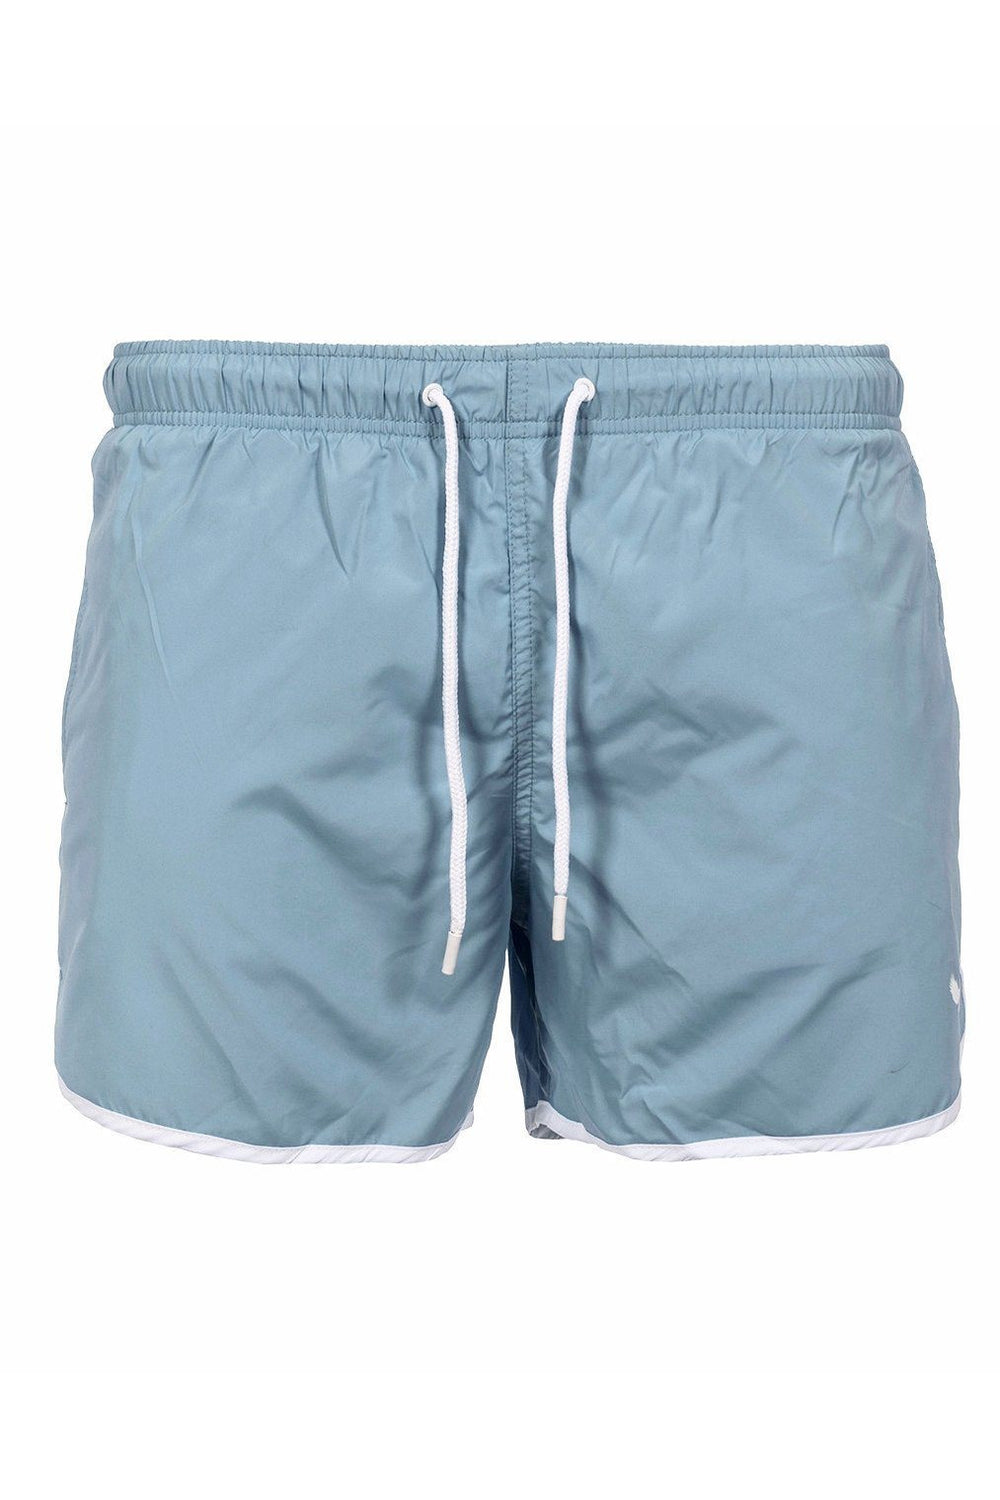 Shorts - Basic Swim Shorts Dusty Blue